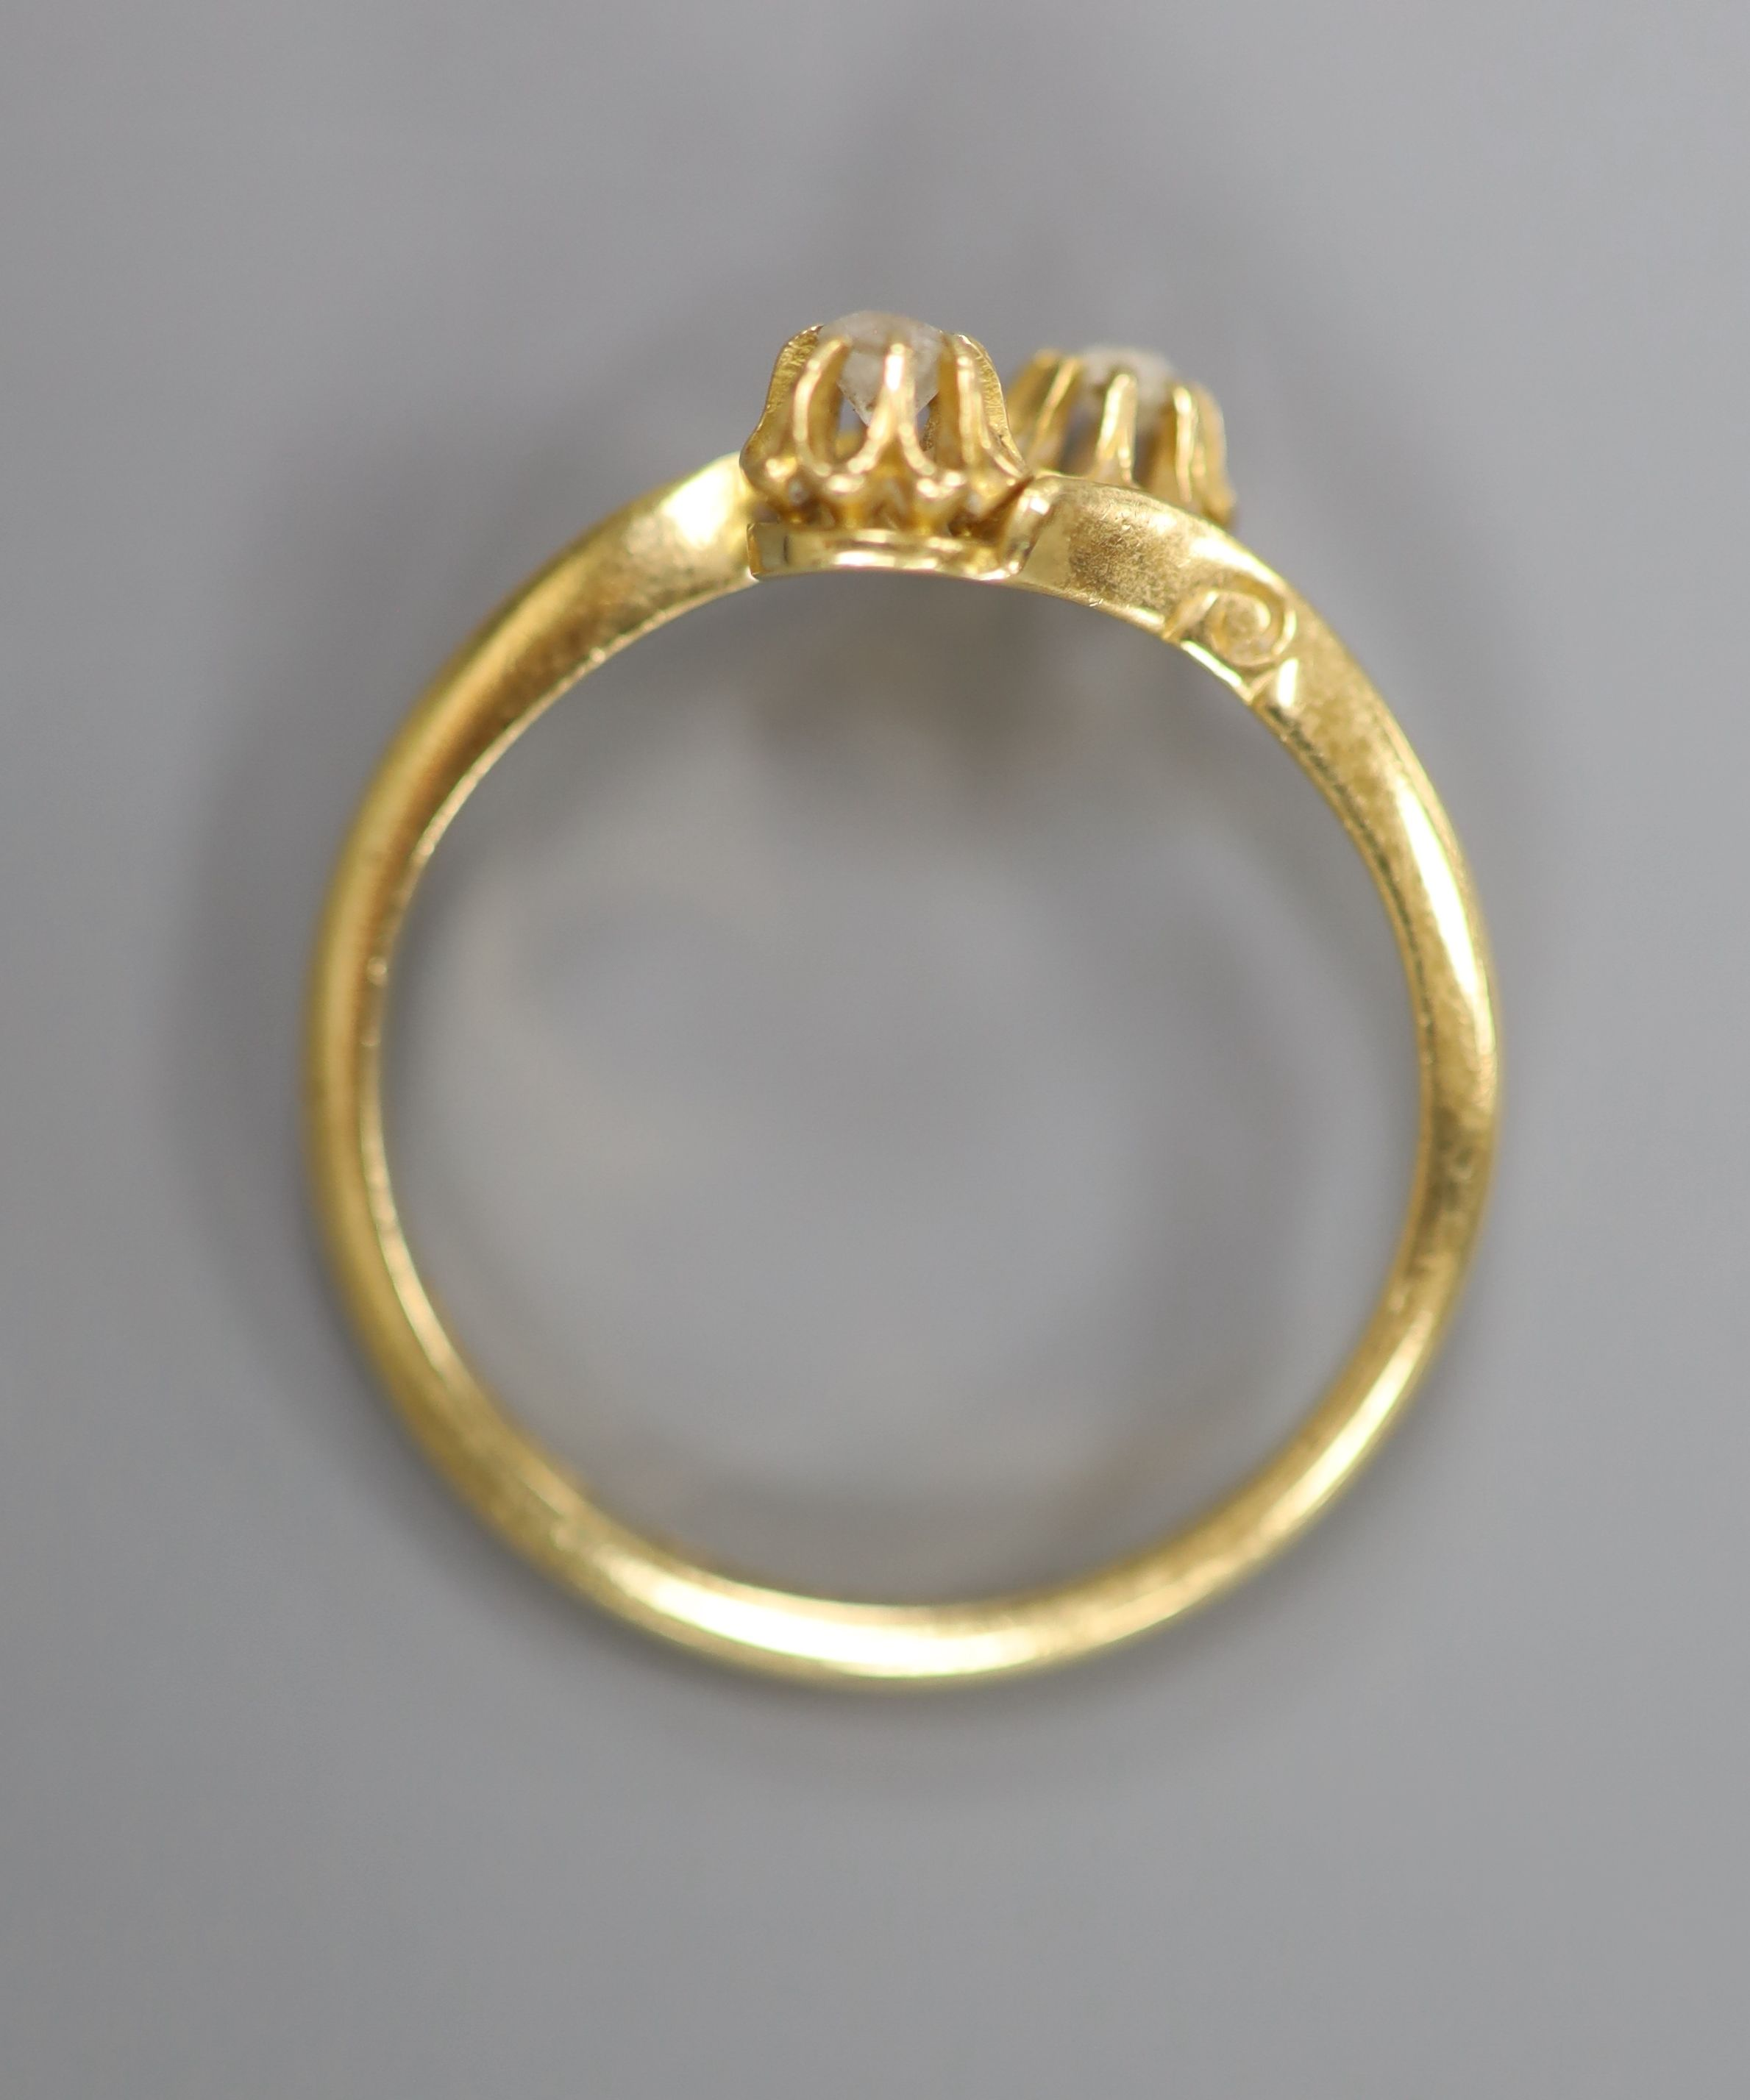 A George V 18ct gold and two stone diamond set crossover ring, size O/P, gross 2.7 grams. - Image 3 of 3